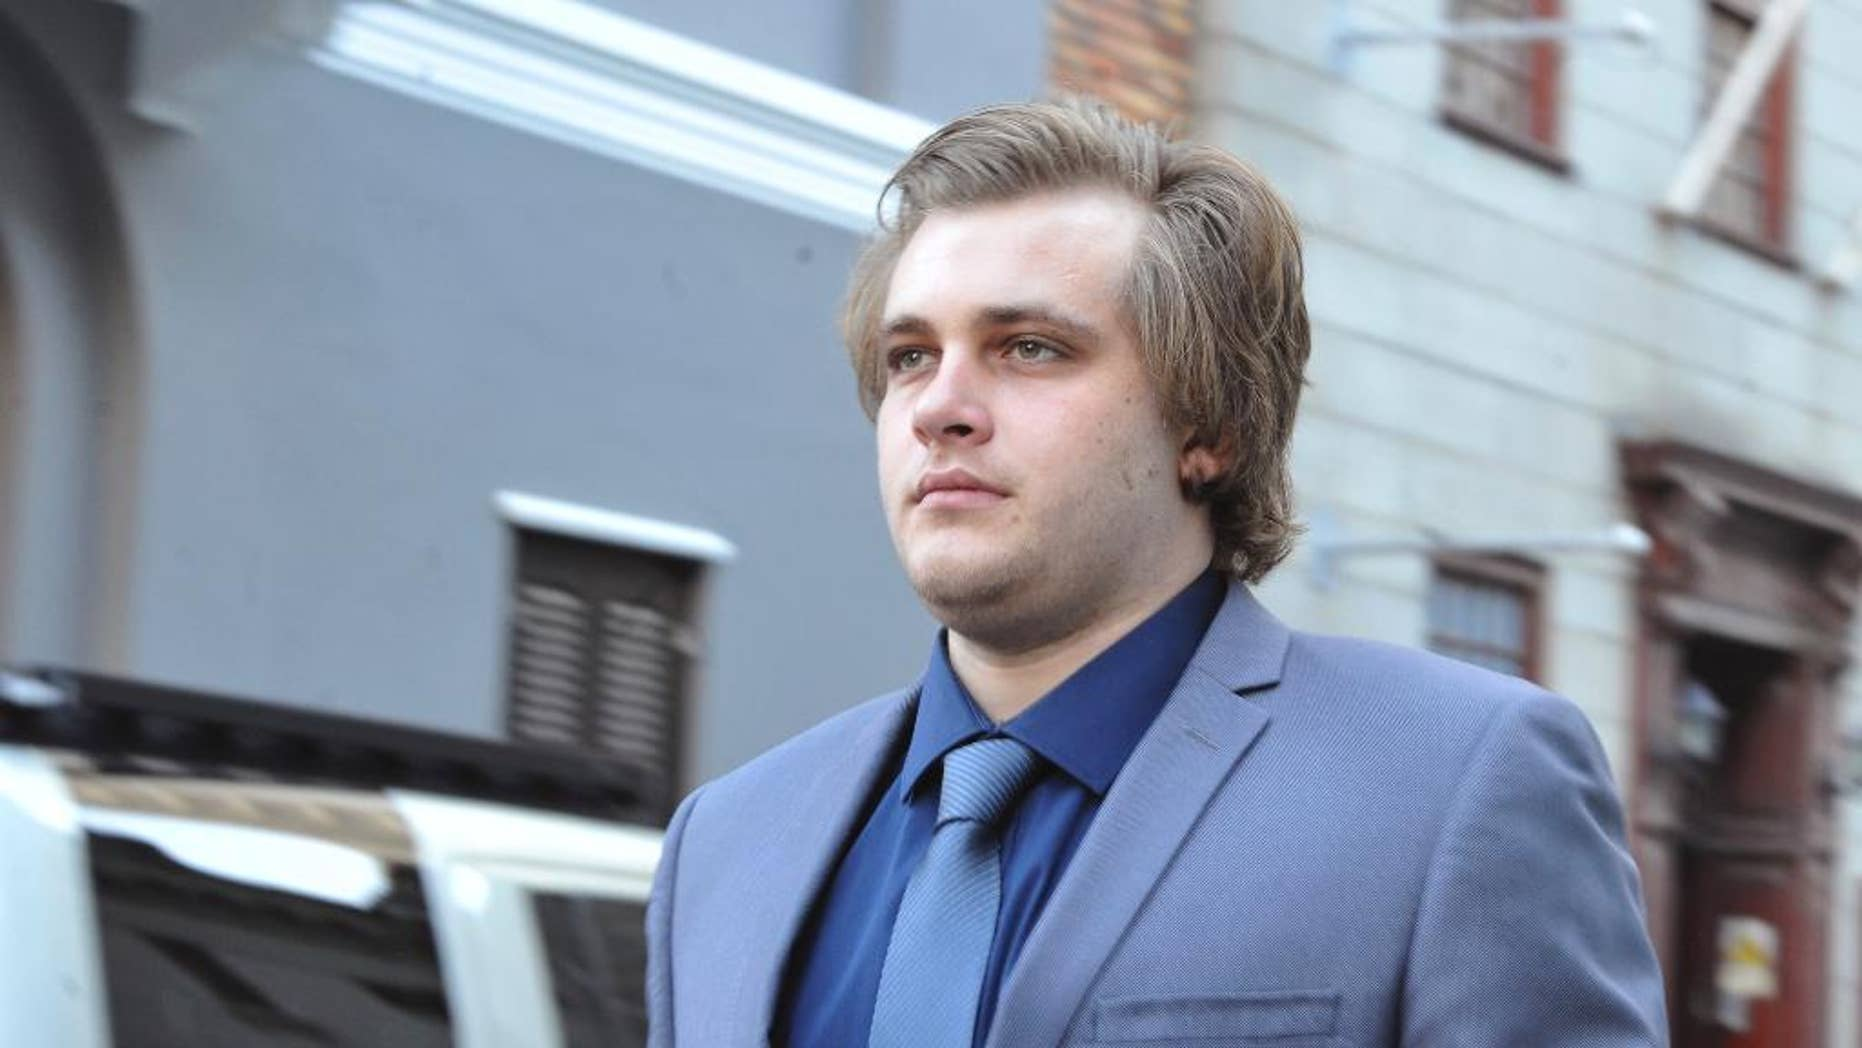 Henri Van Breda arrives at the High Court in Cape Town, South Africa, Monday, April 24, 2017. He is accused of murder of his parents and older brother in 2015. Breda pleaded not guilty to murder and to the attempted murder of his sister with an axe. (AP Photo)